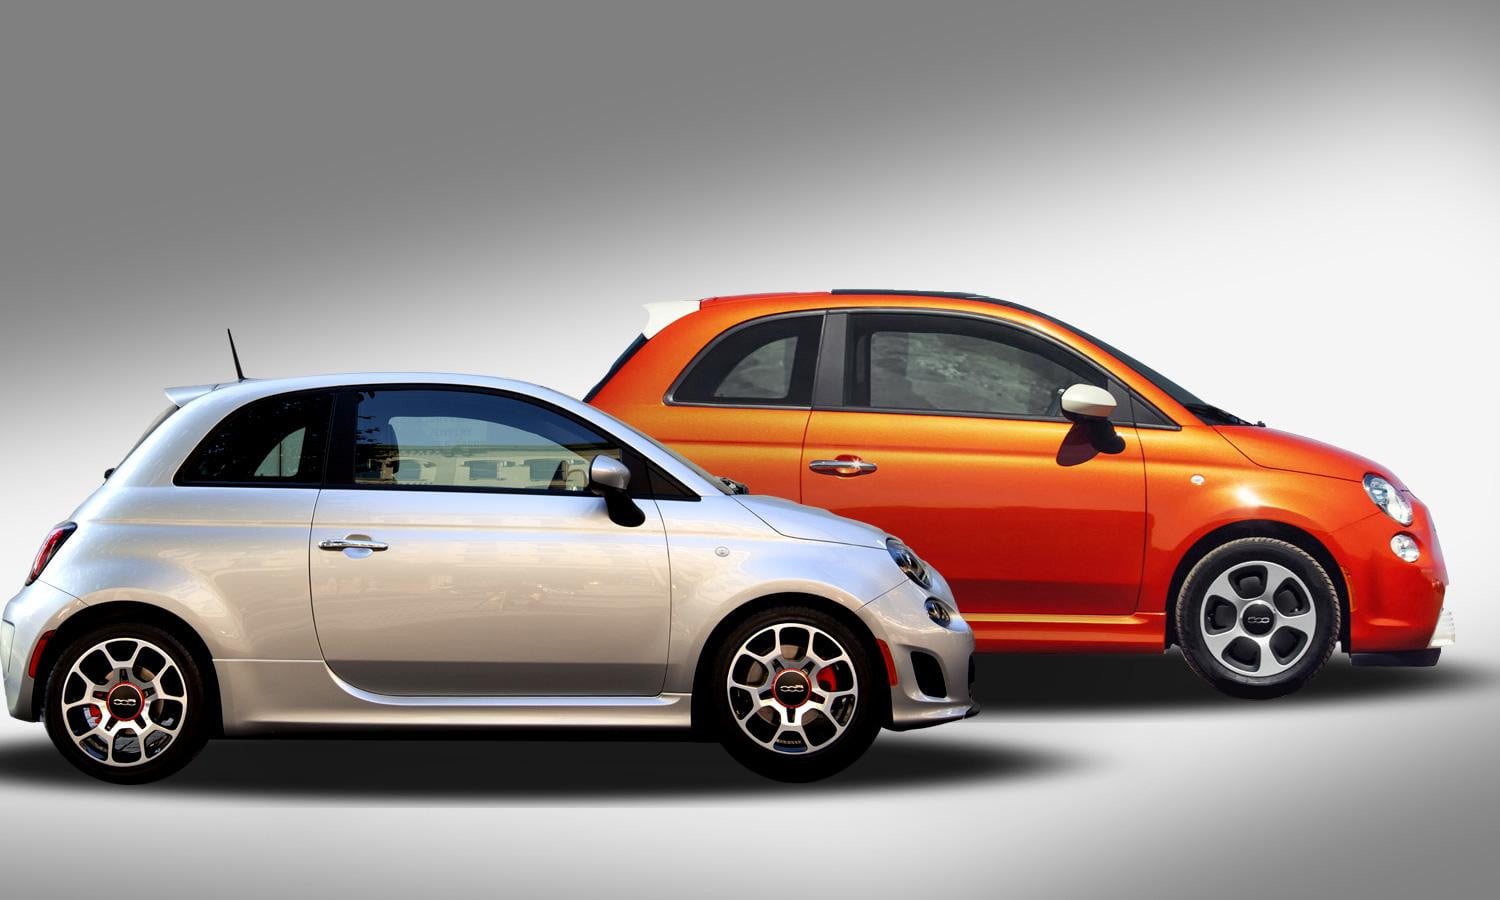 http://icdn4.digitaltrends.com/image/fiat-500e-vs-fiat-500-turbo-1500x900.jpg